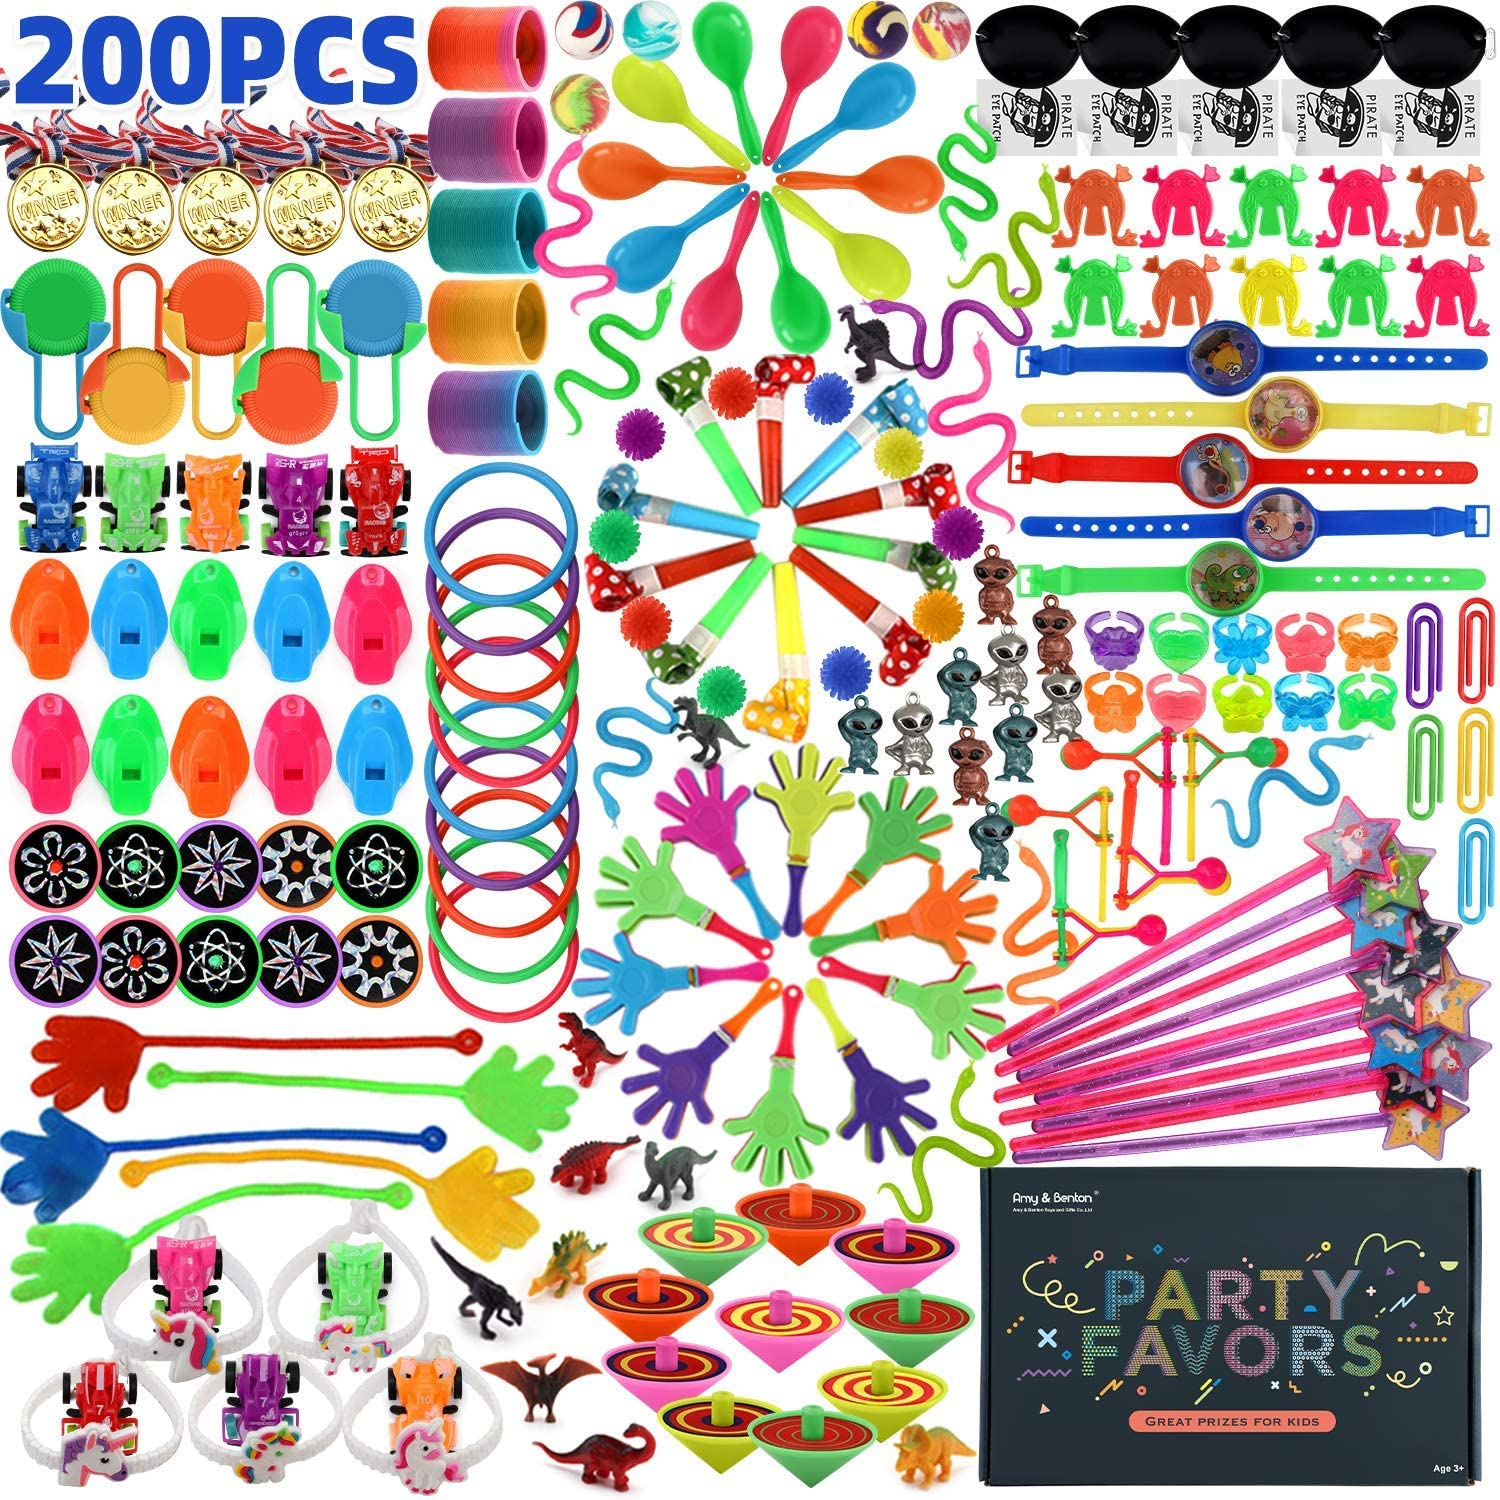 Amy&Benton 200PCS Goodie Bag Fillers Party Favors for Kids Birthday Pinata Filler Toy Assortment Prizes for Kids Classroom Rewards